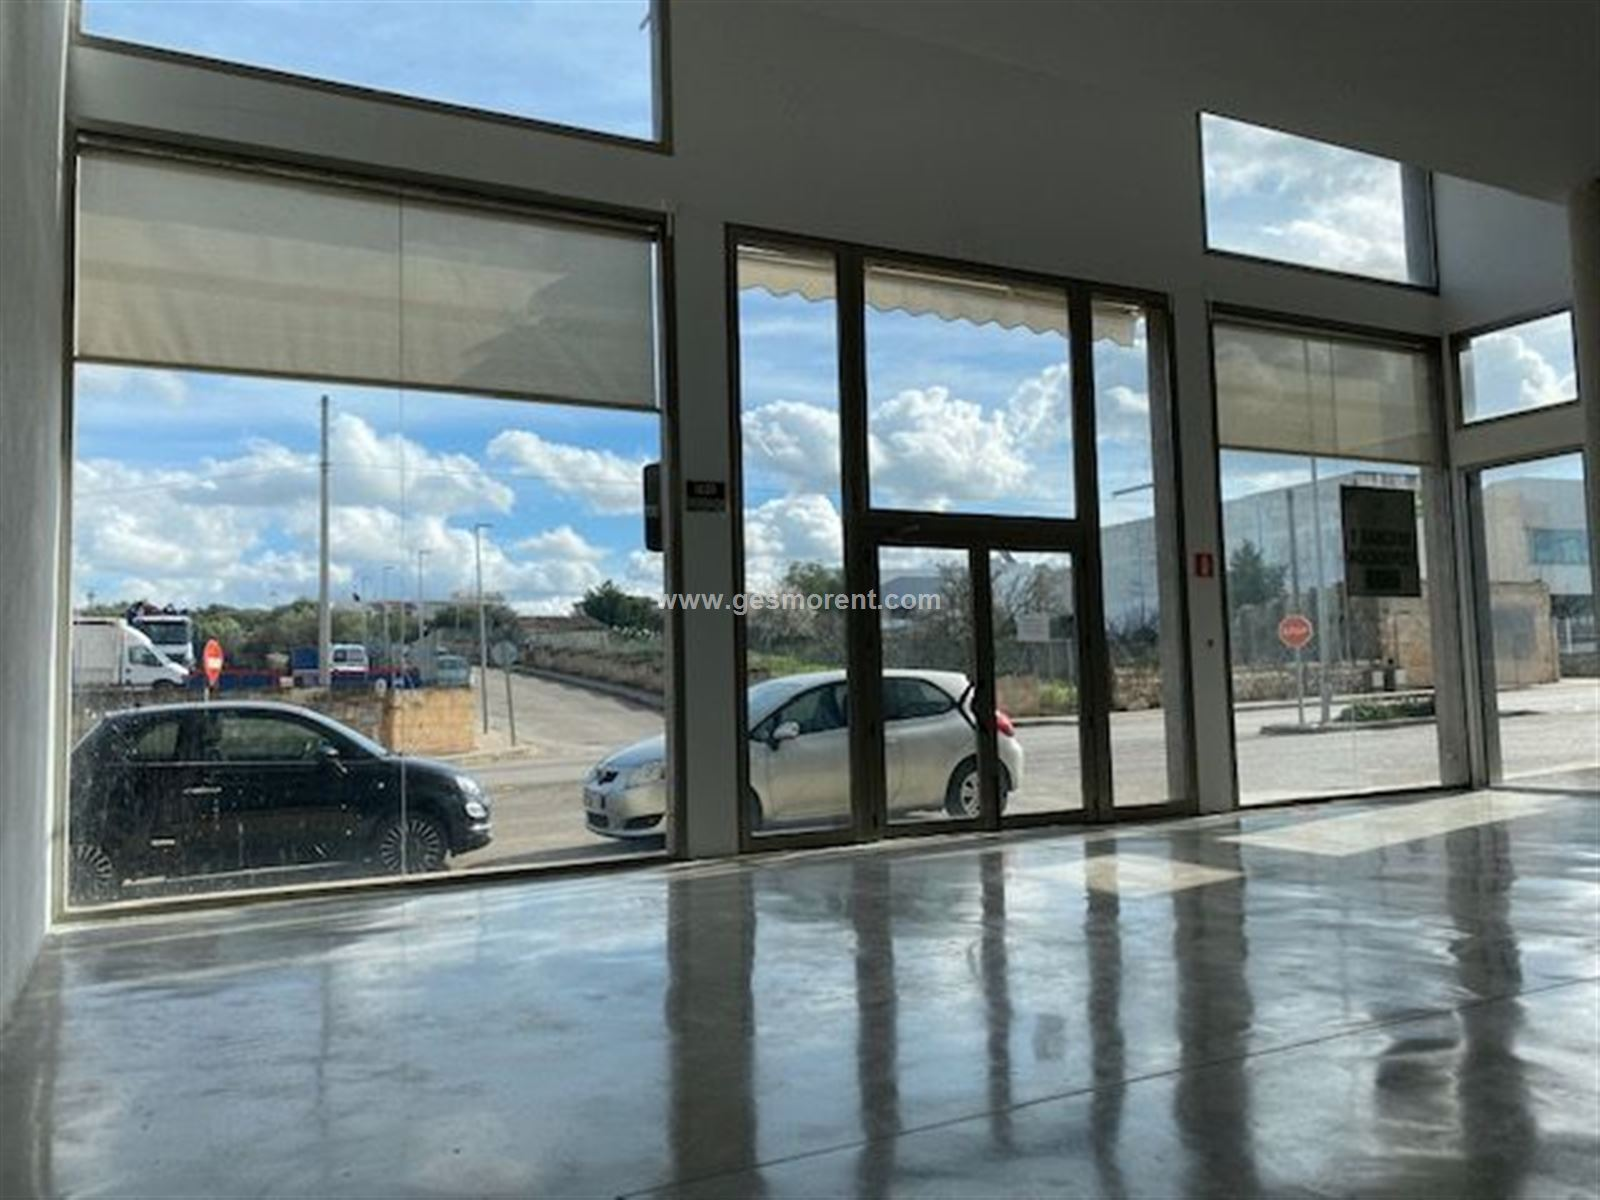 Rent Business premise  Sa pobla - crestaix. Local comercial en alquiler de 117m2 en muro